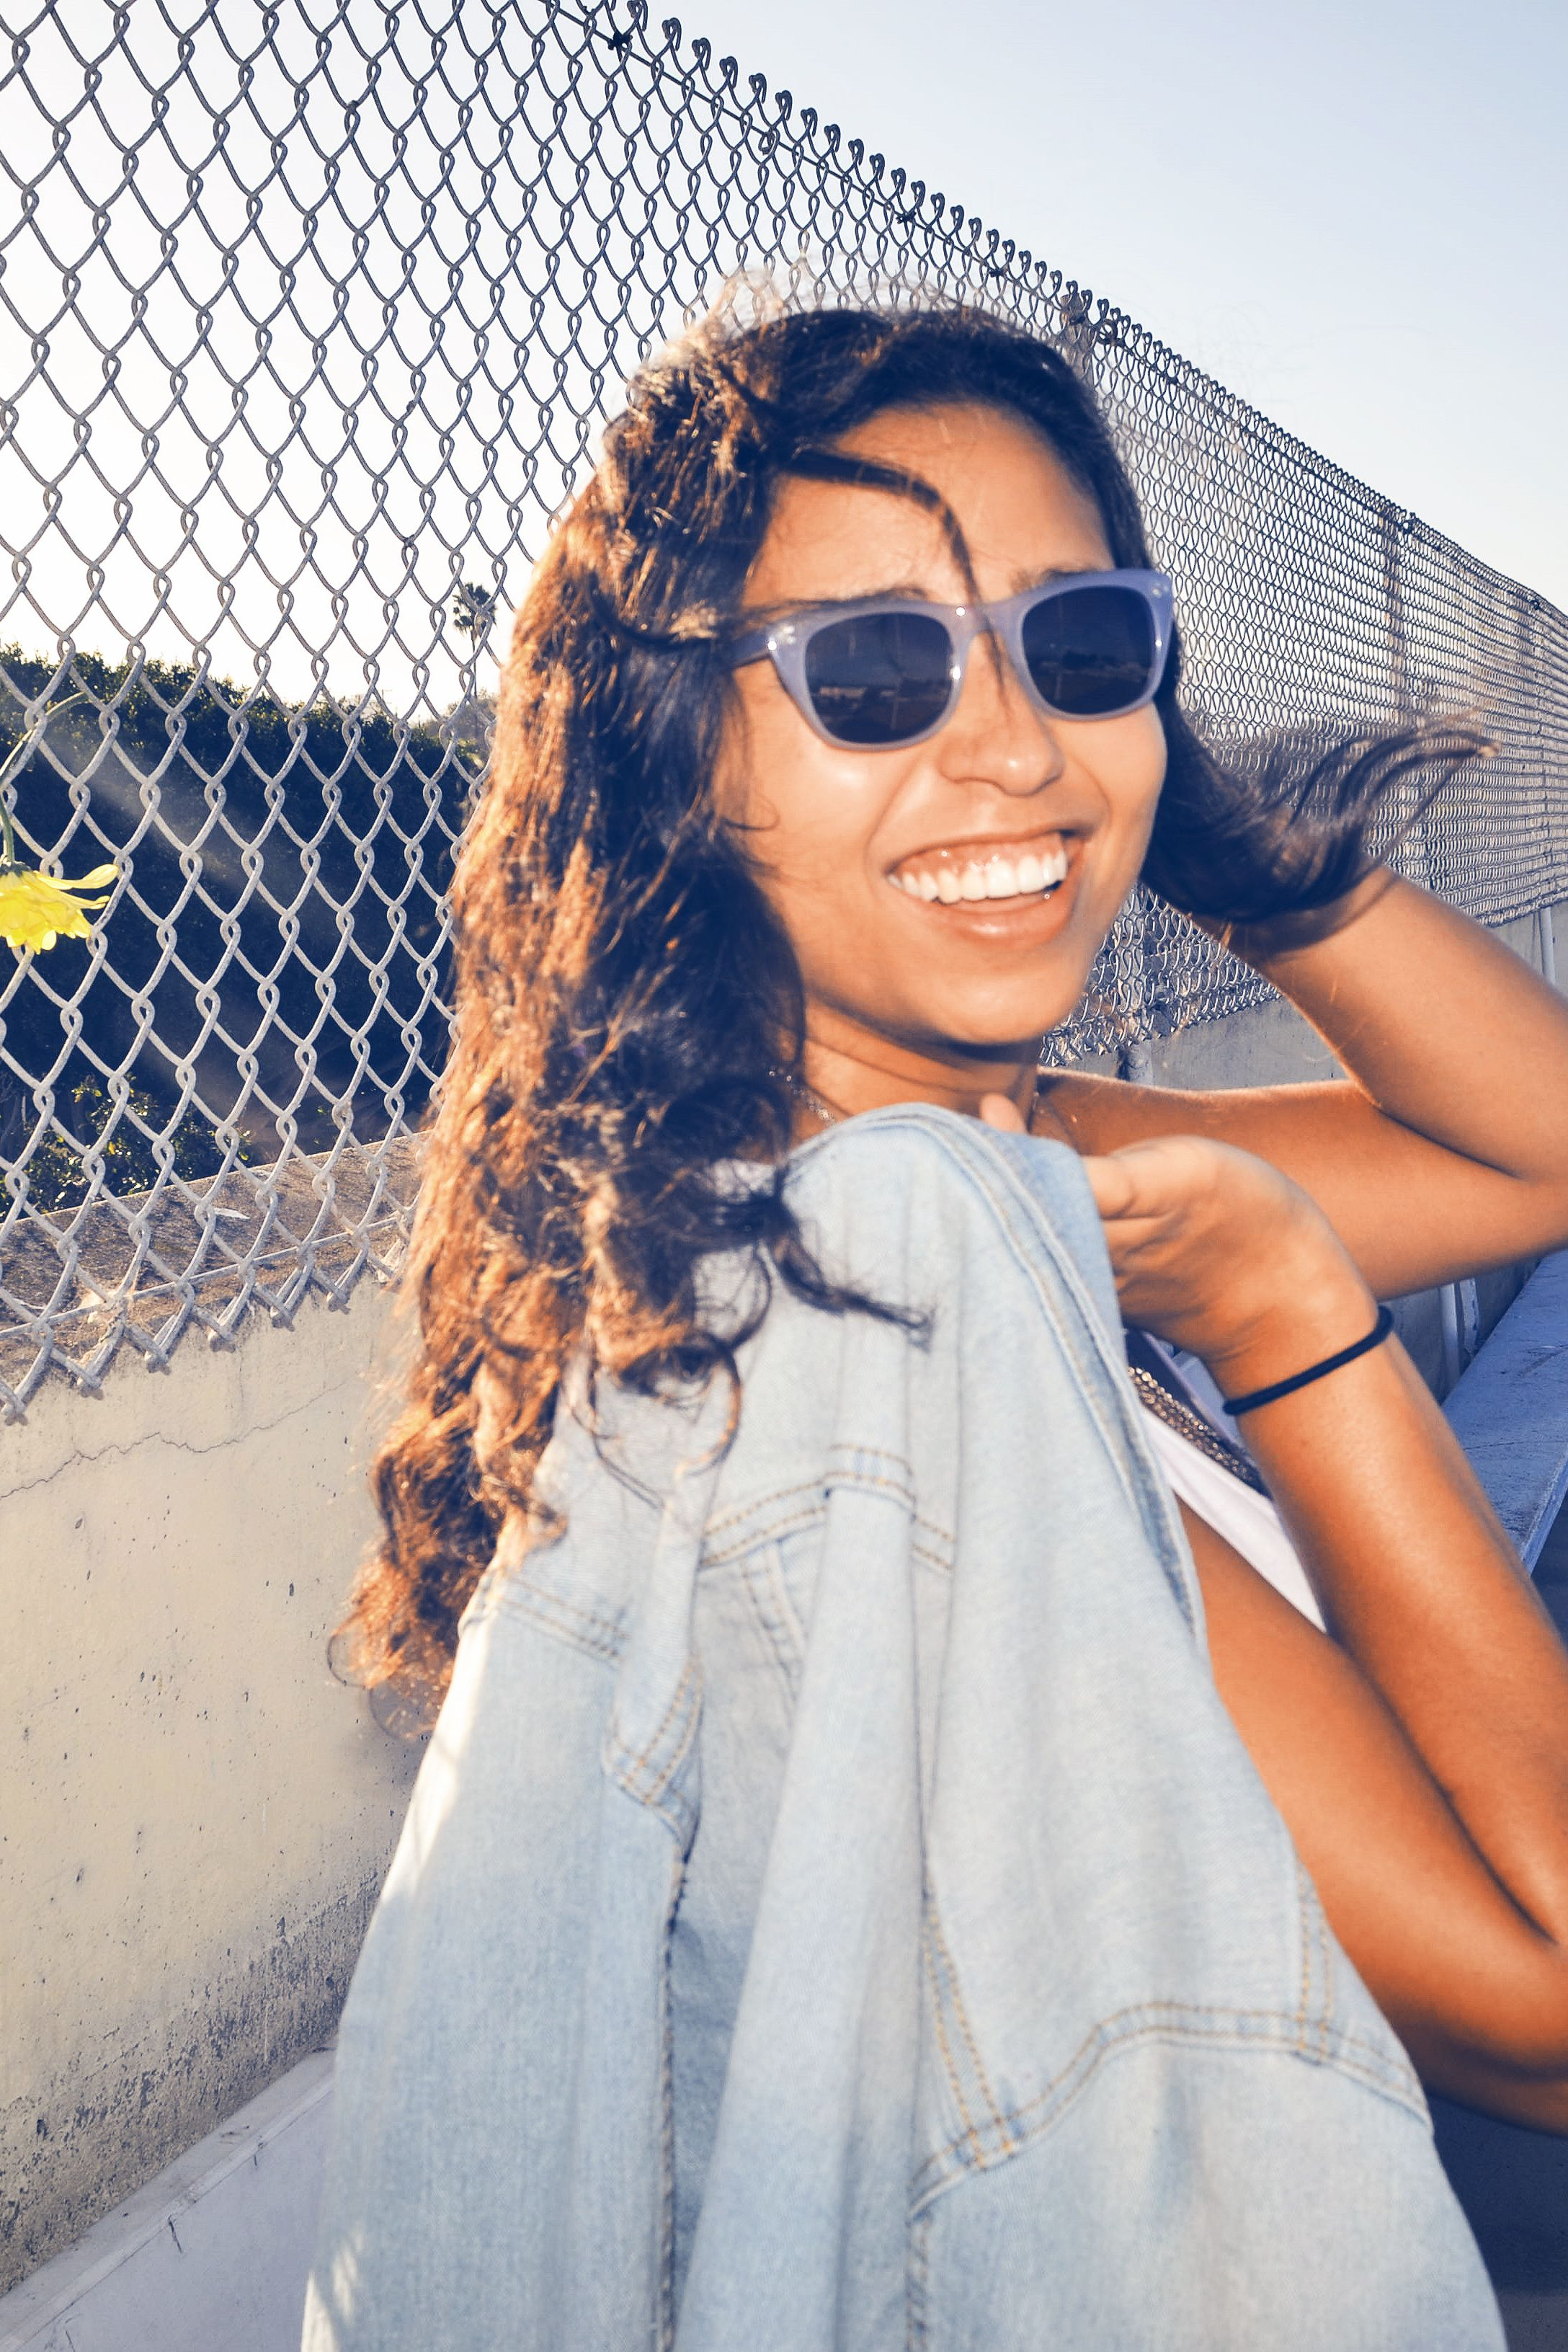 01ff106eaeb Glasses · Sunglasses · Share your smile with the world 😁 Frame  Maxine . .  . . .